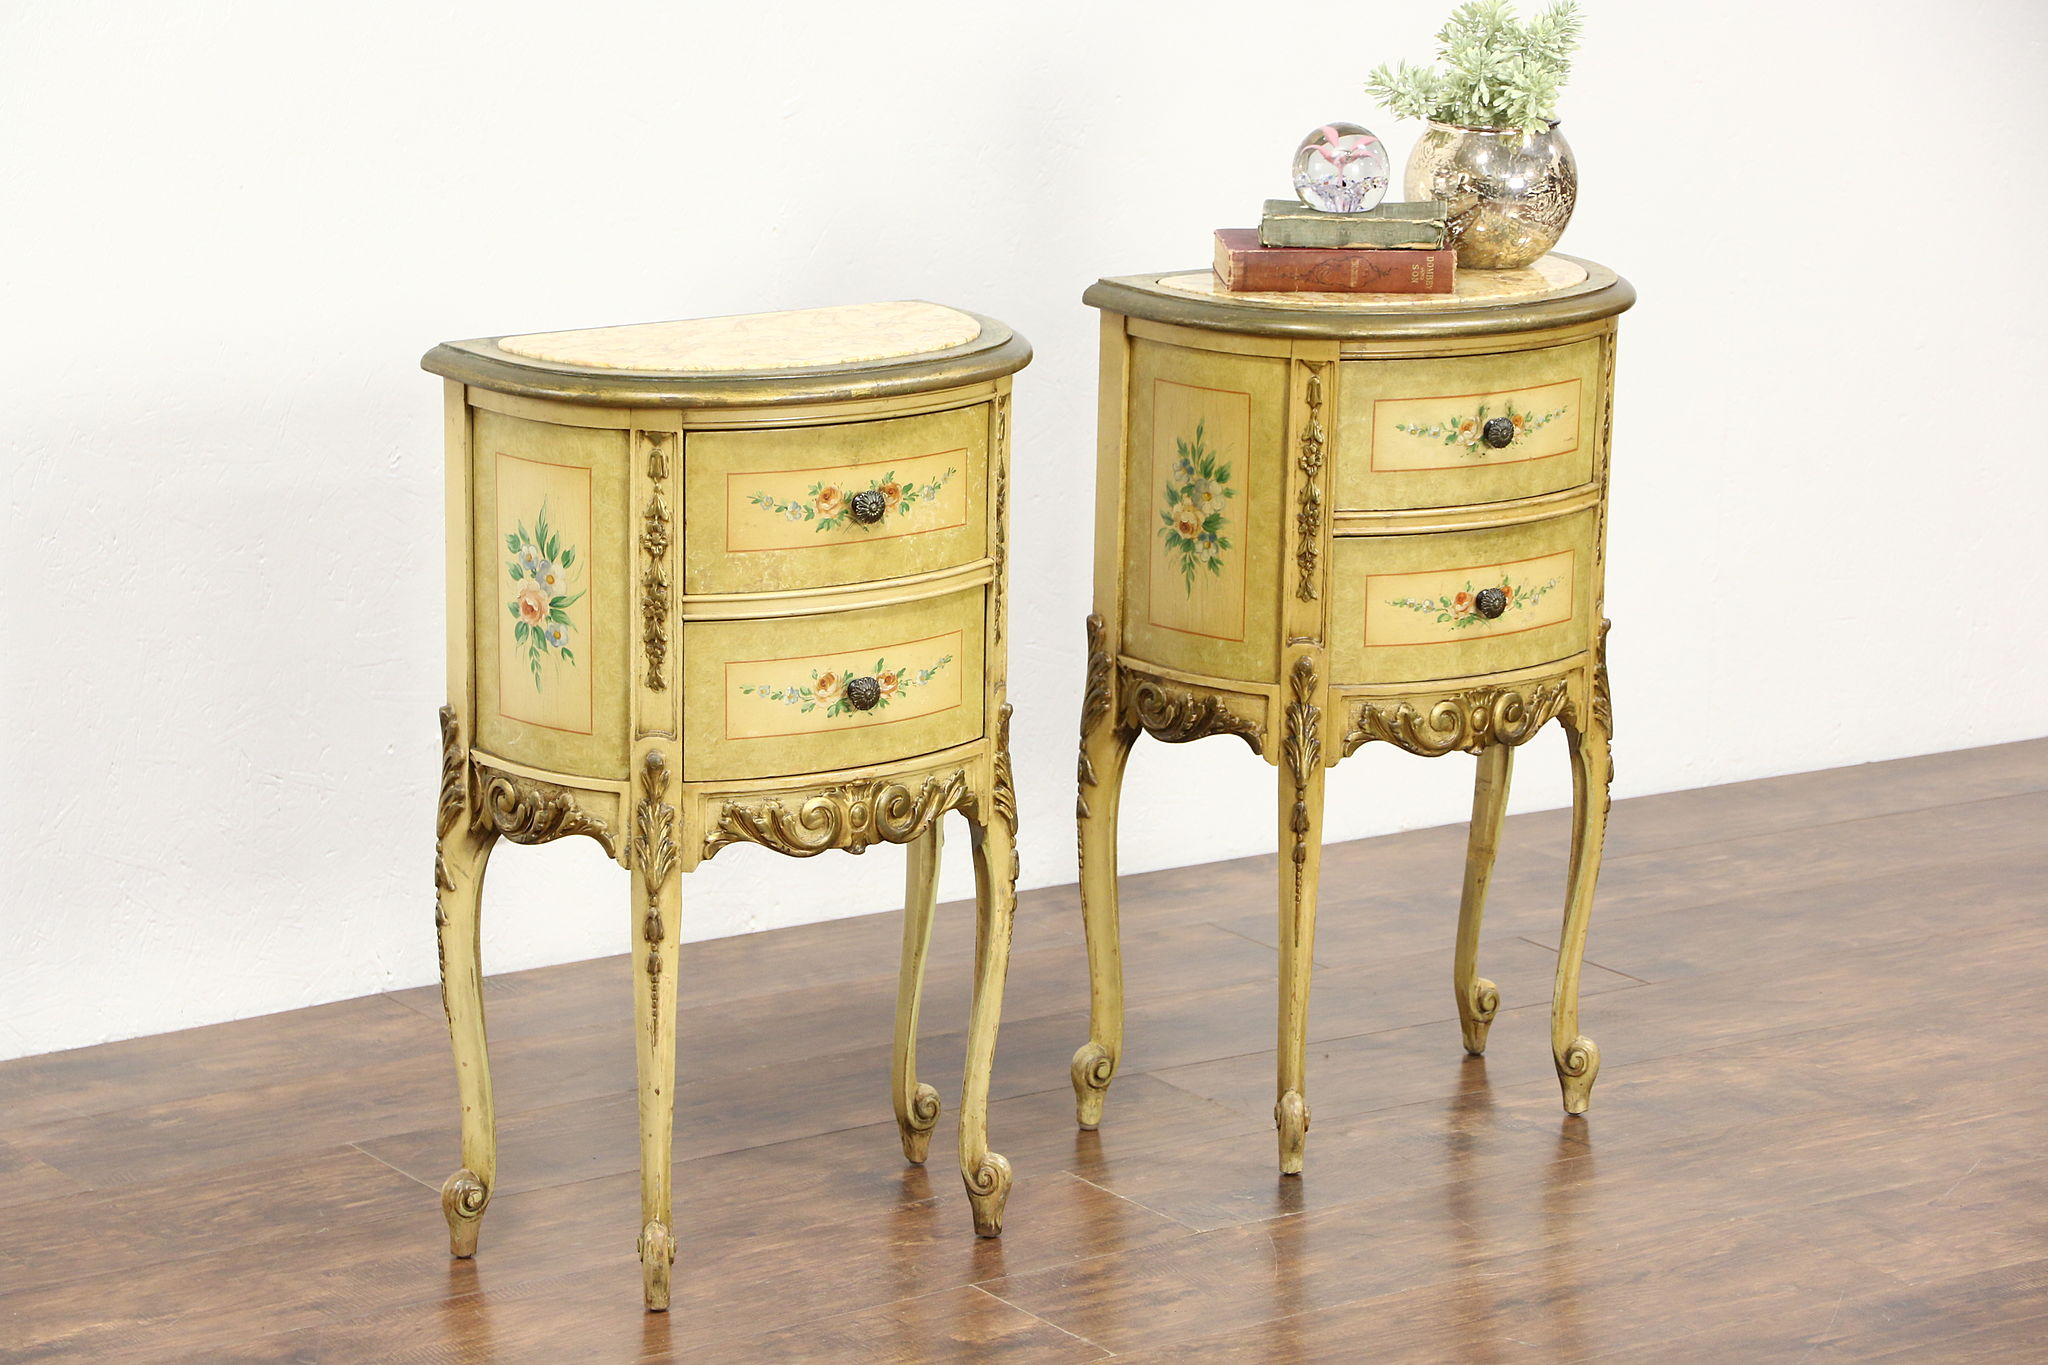 Sold Pair Hand Painted 1930 Vintage End Tables Or Nightstands Marble Tops Harp Gallery Antiques Furniture